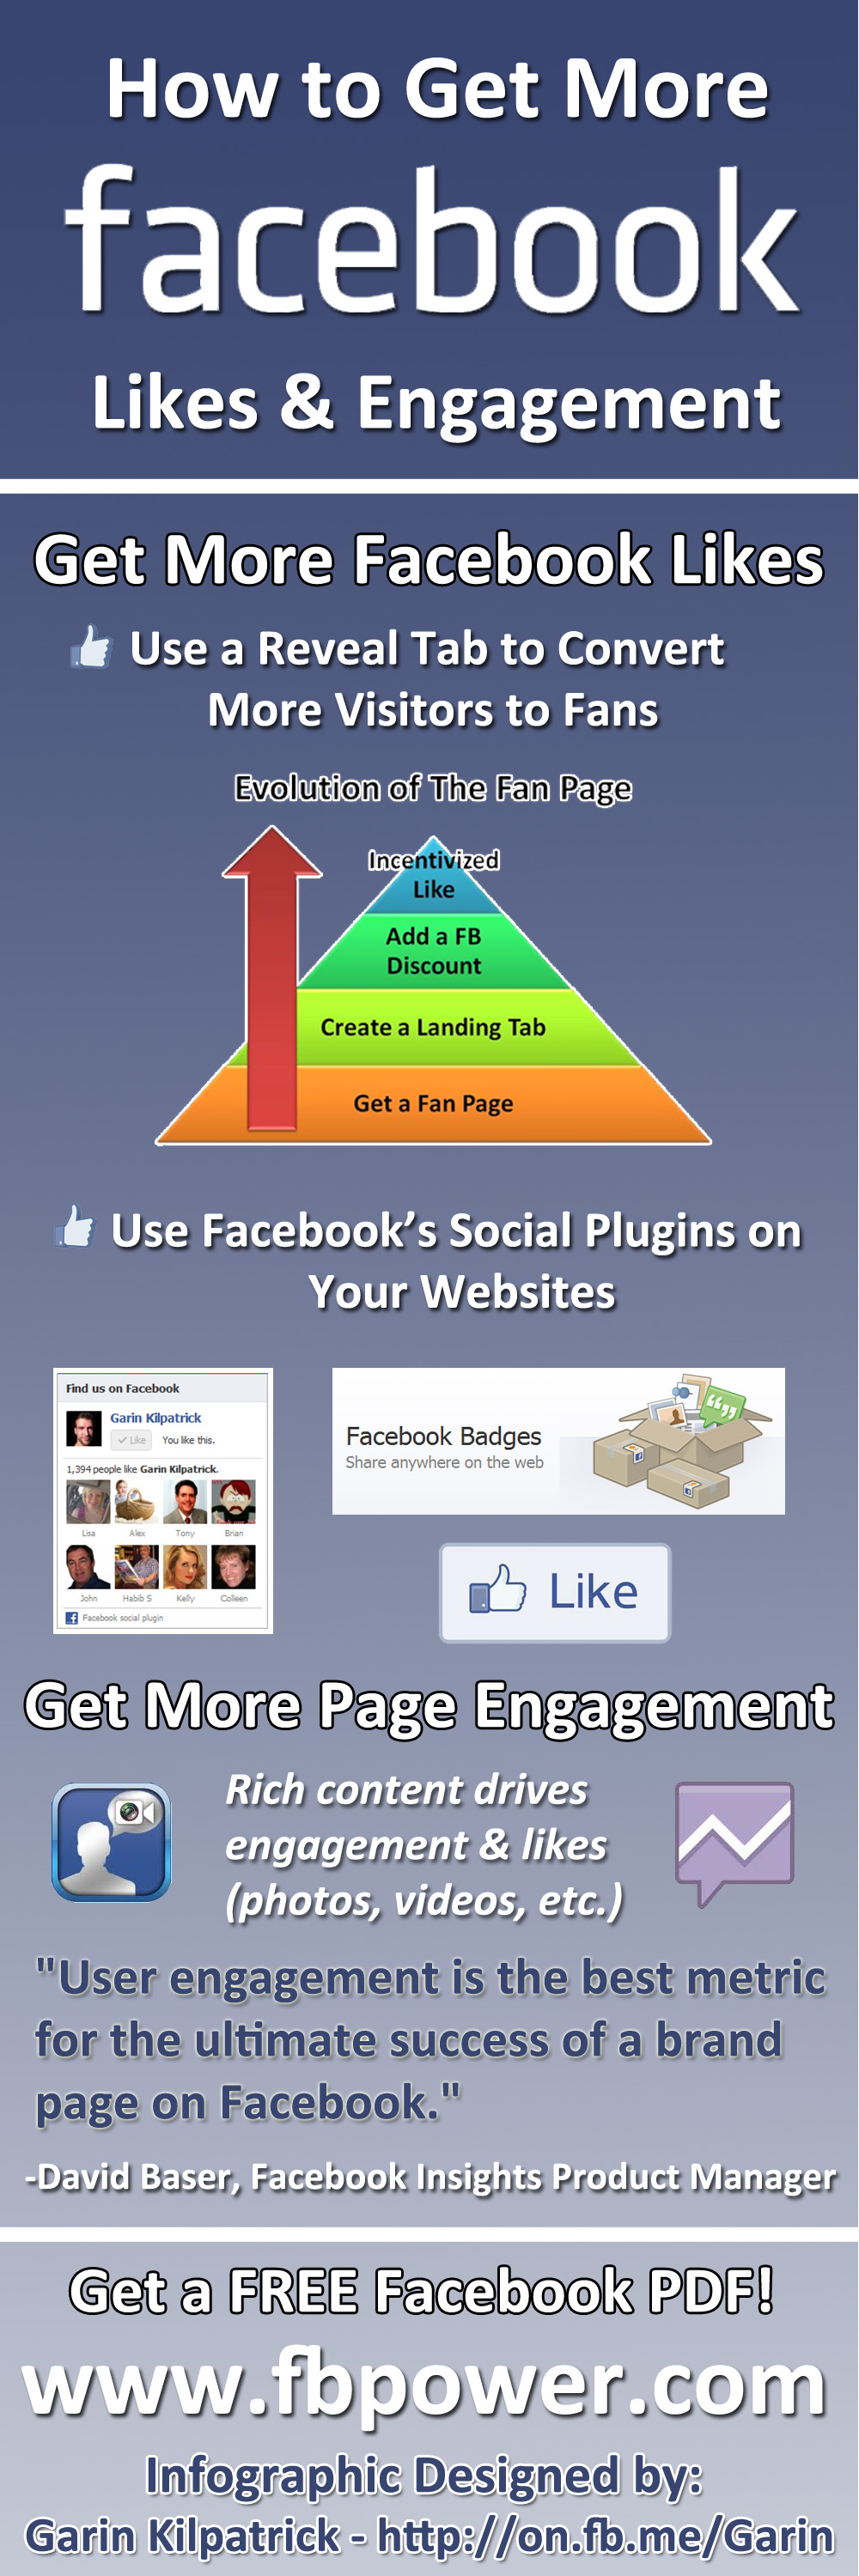 get-more-facebook-likes-and-engagement